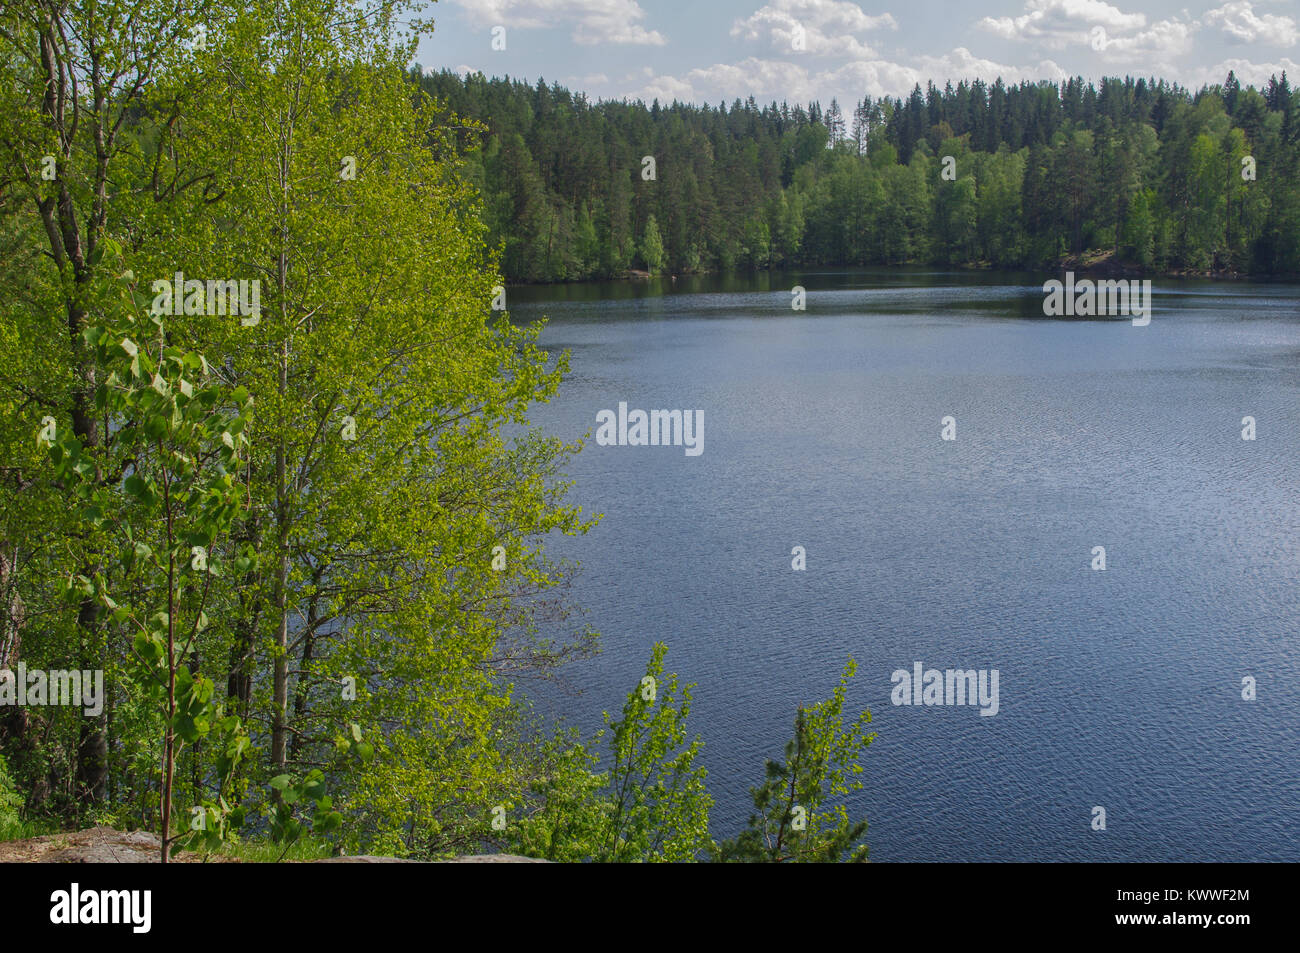 lake Yastrebinoye, Priozersky district in Leningrad region, Russia - Stock Image